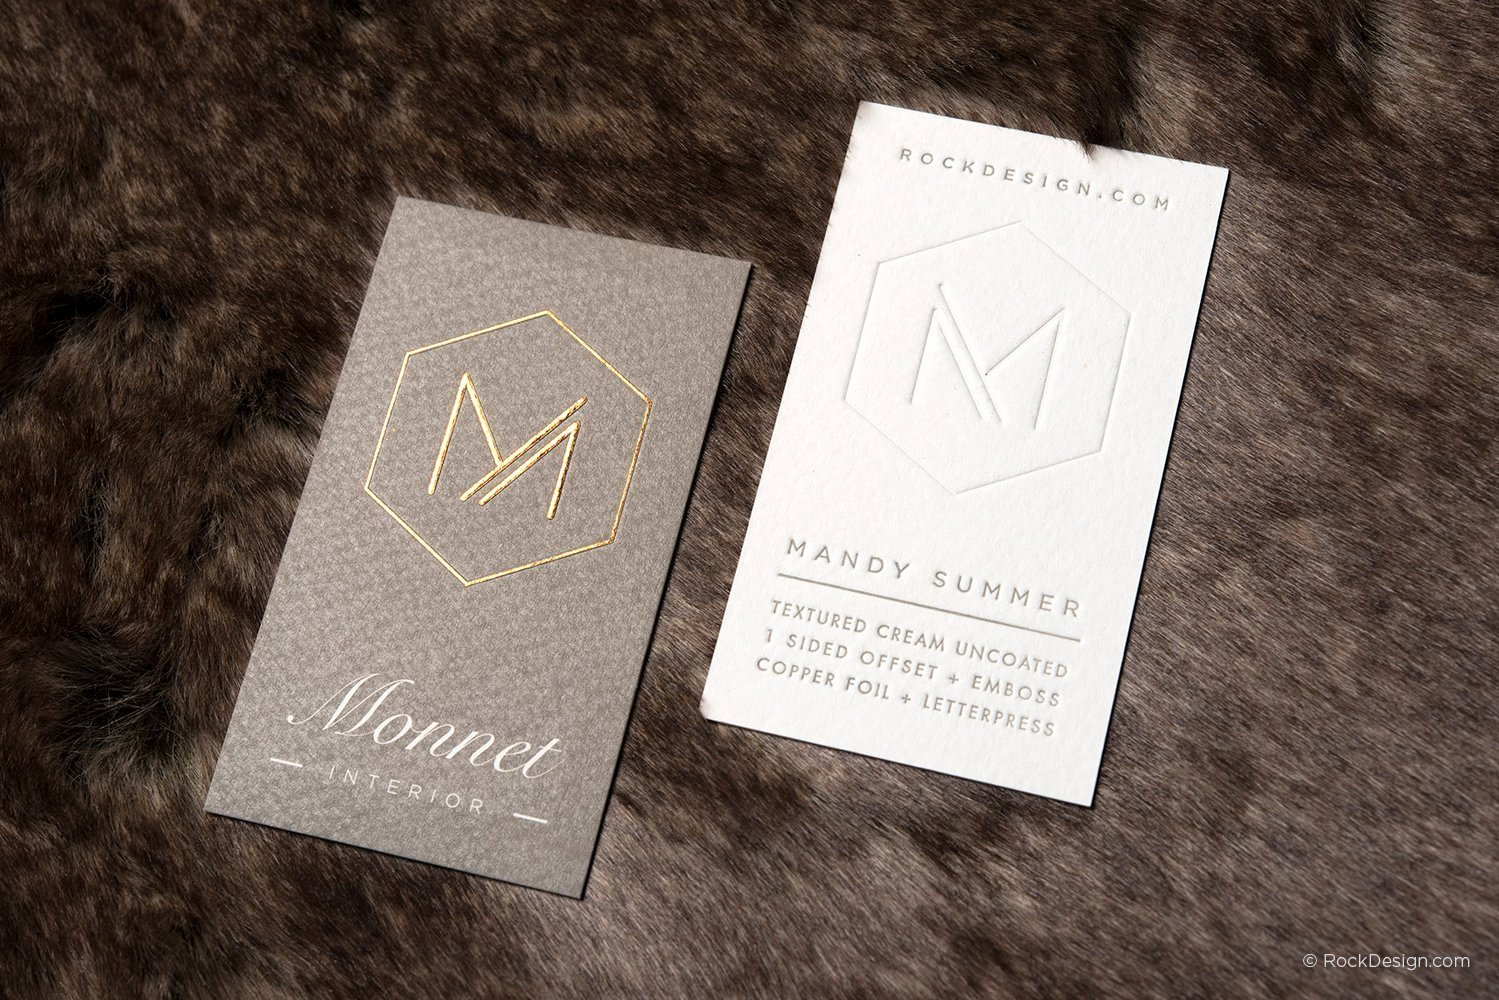 Interior Designers Business Cards Luxury Interior Designer Template On Textured Stock with Emboss and Copper Foil– Monnet Interior